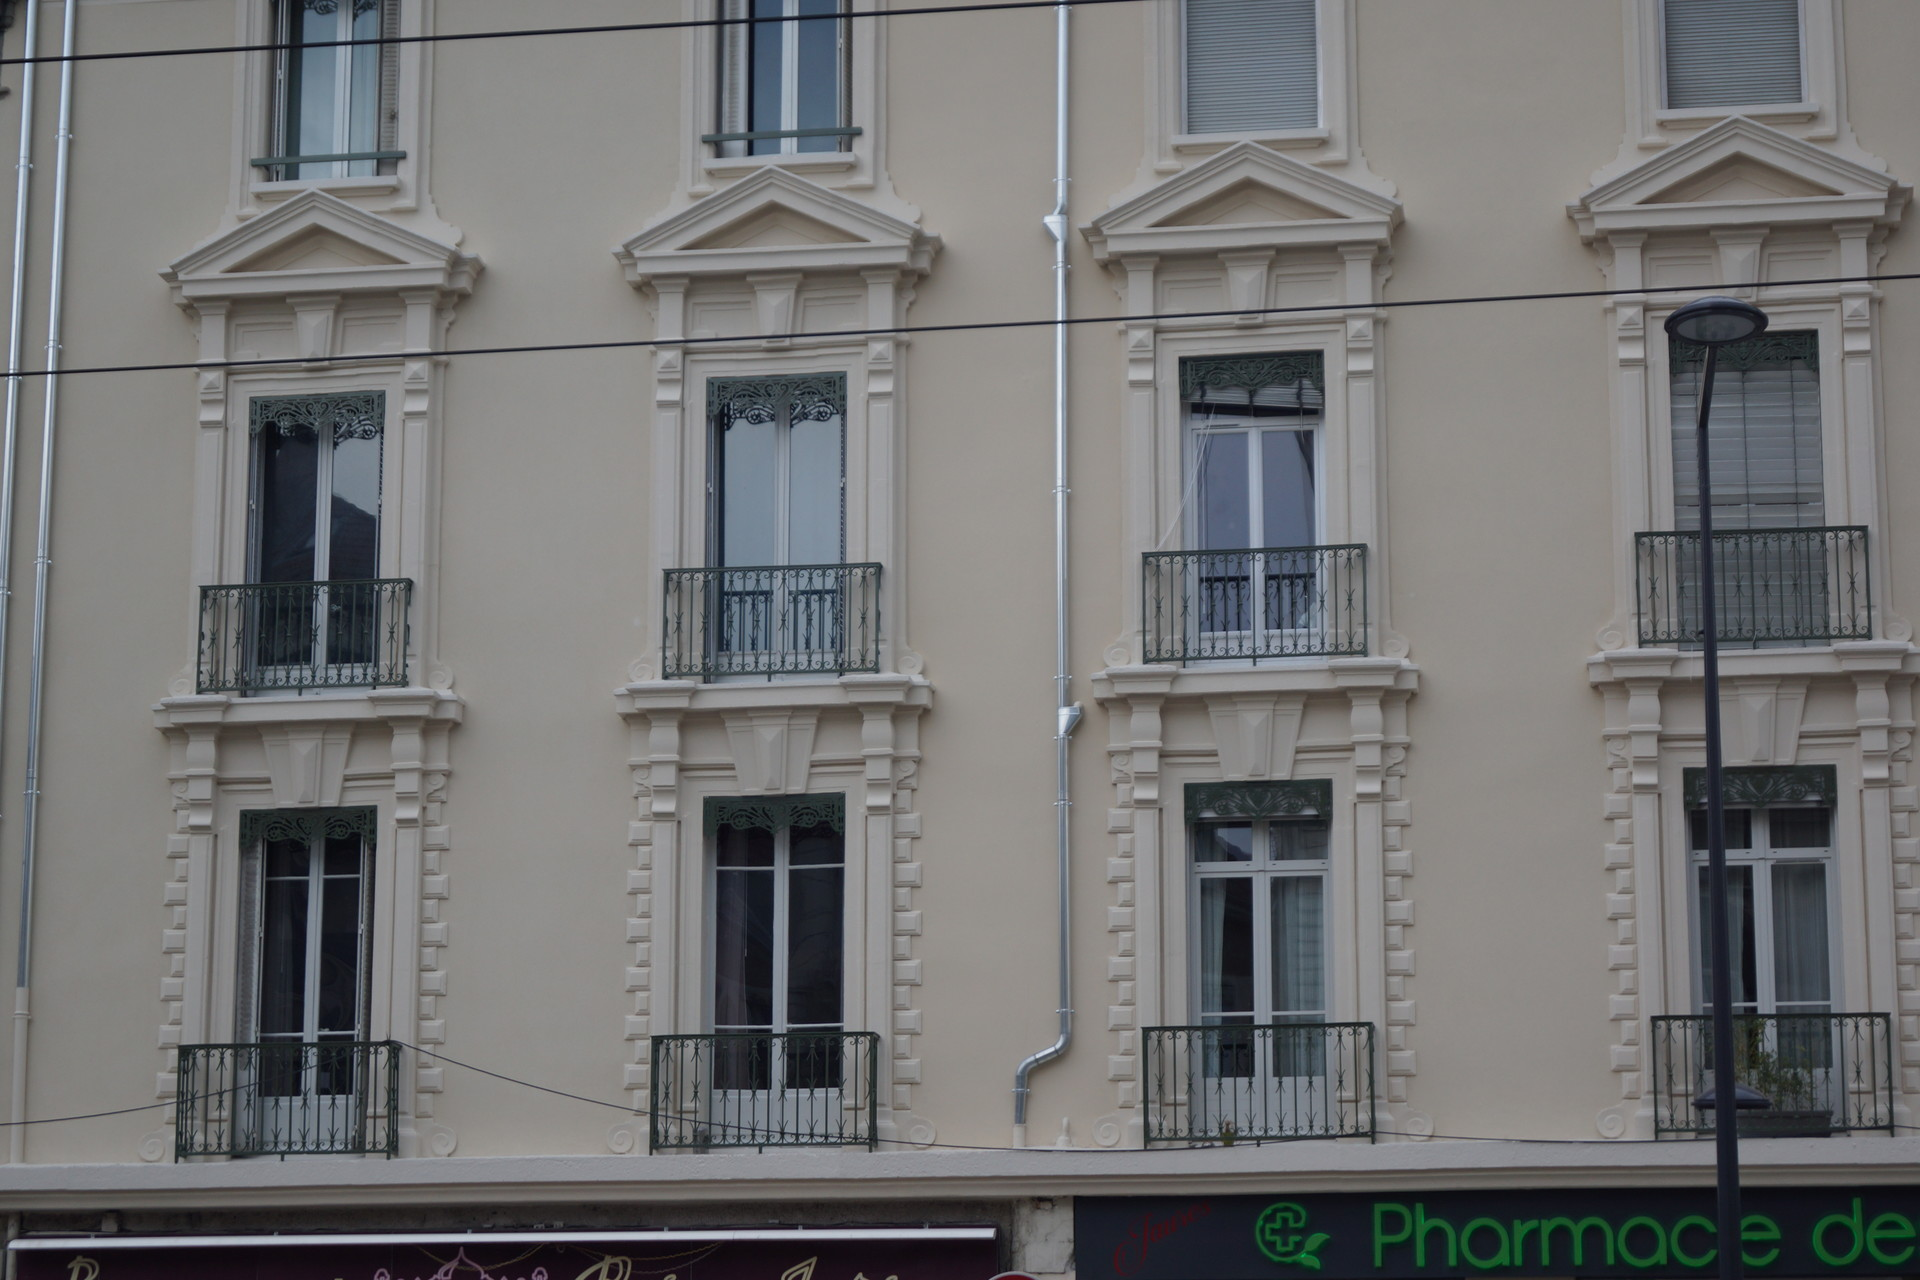 large-and-sunny-appartment-in-central-grenoble-near-all-transports-and-accomodations-422d5a598401203d03be330a2769884c